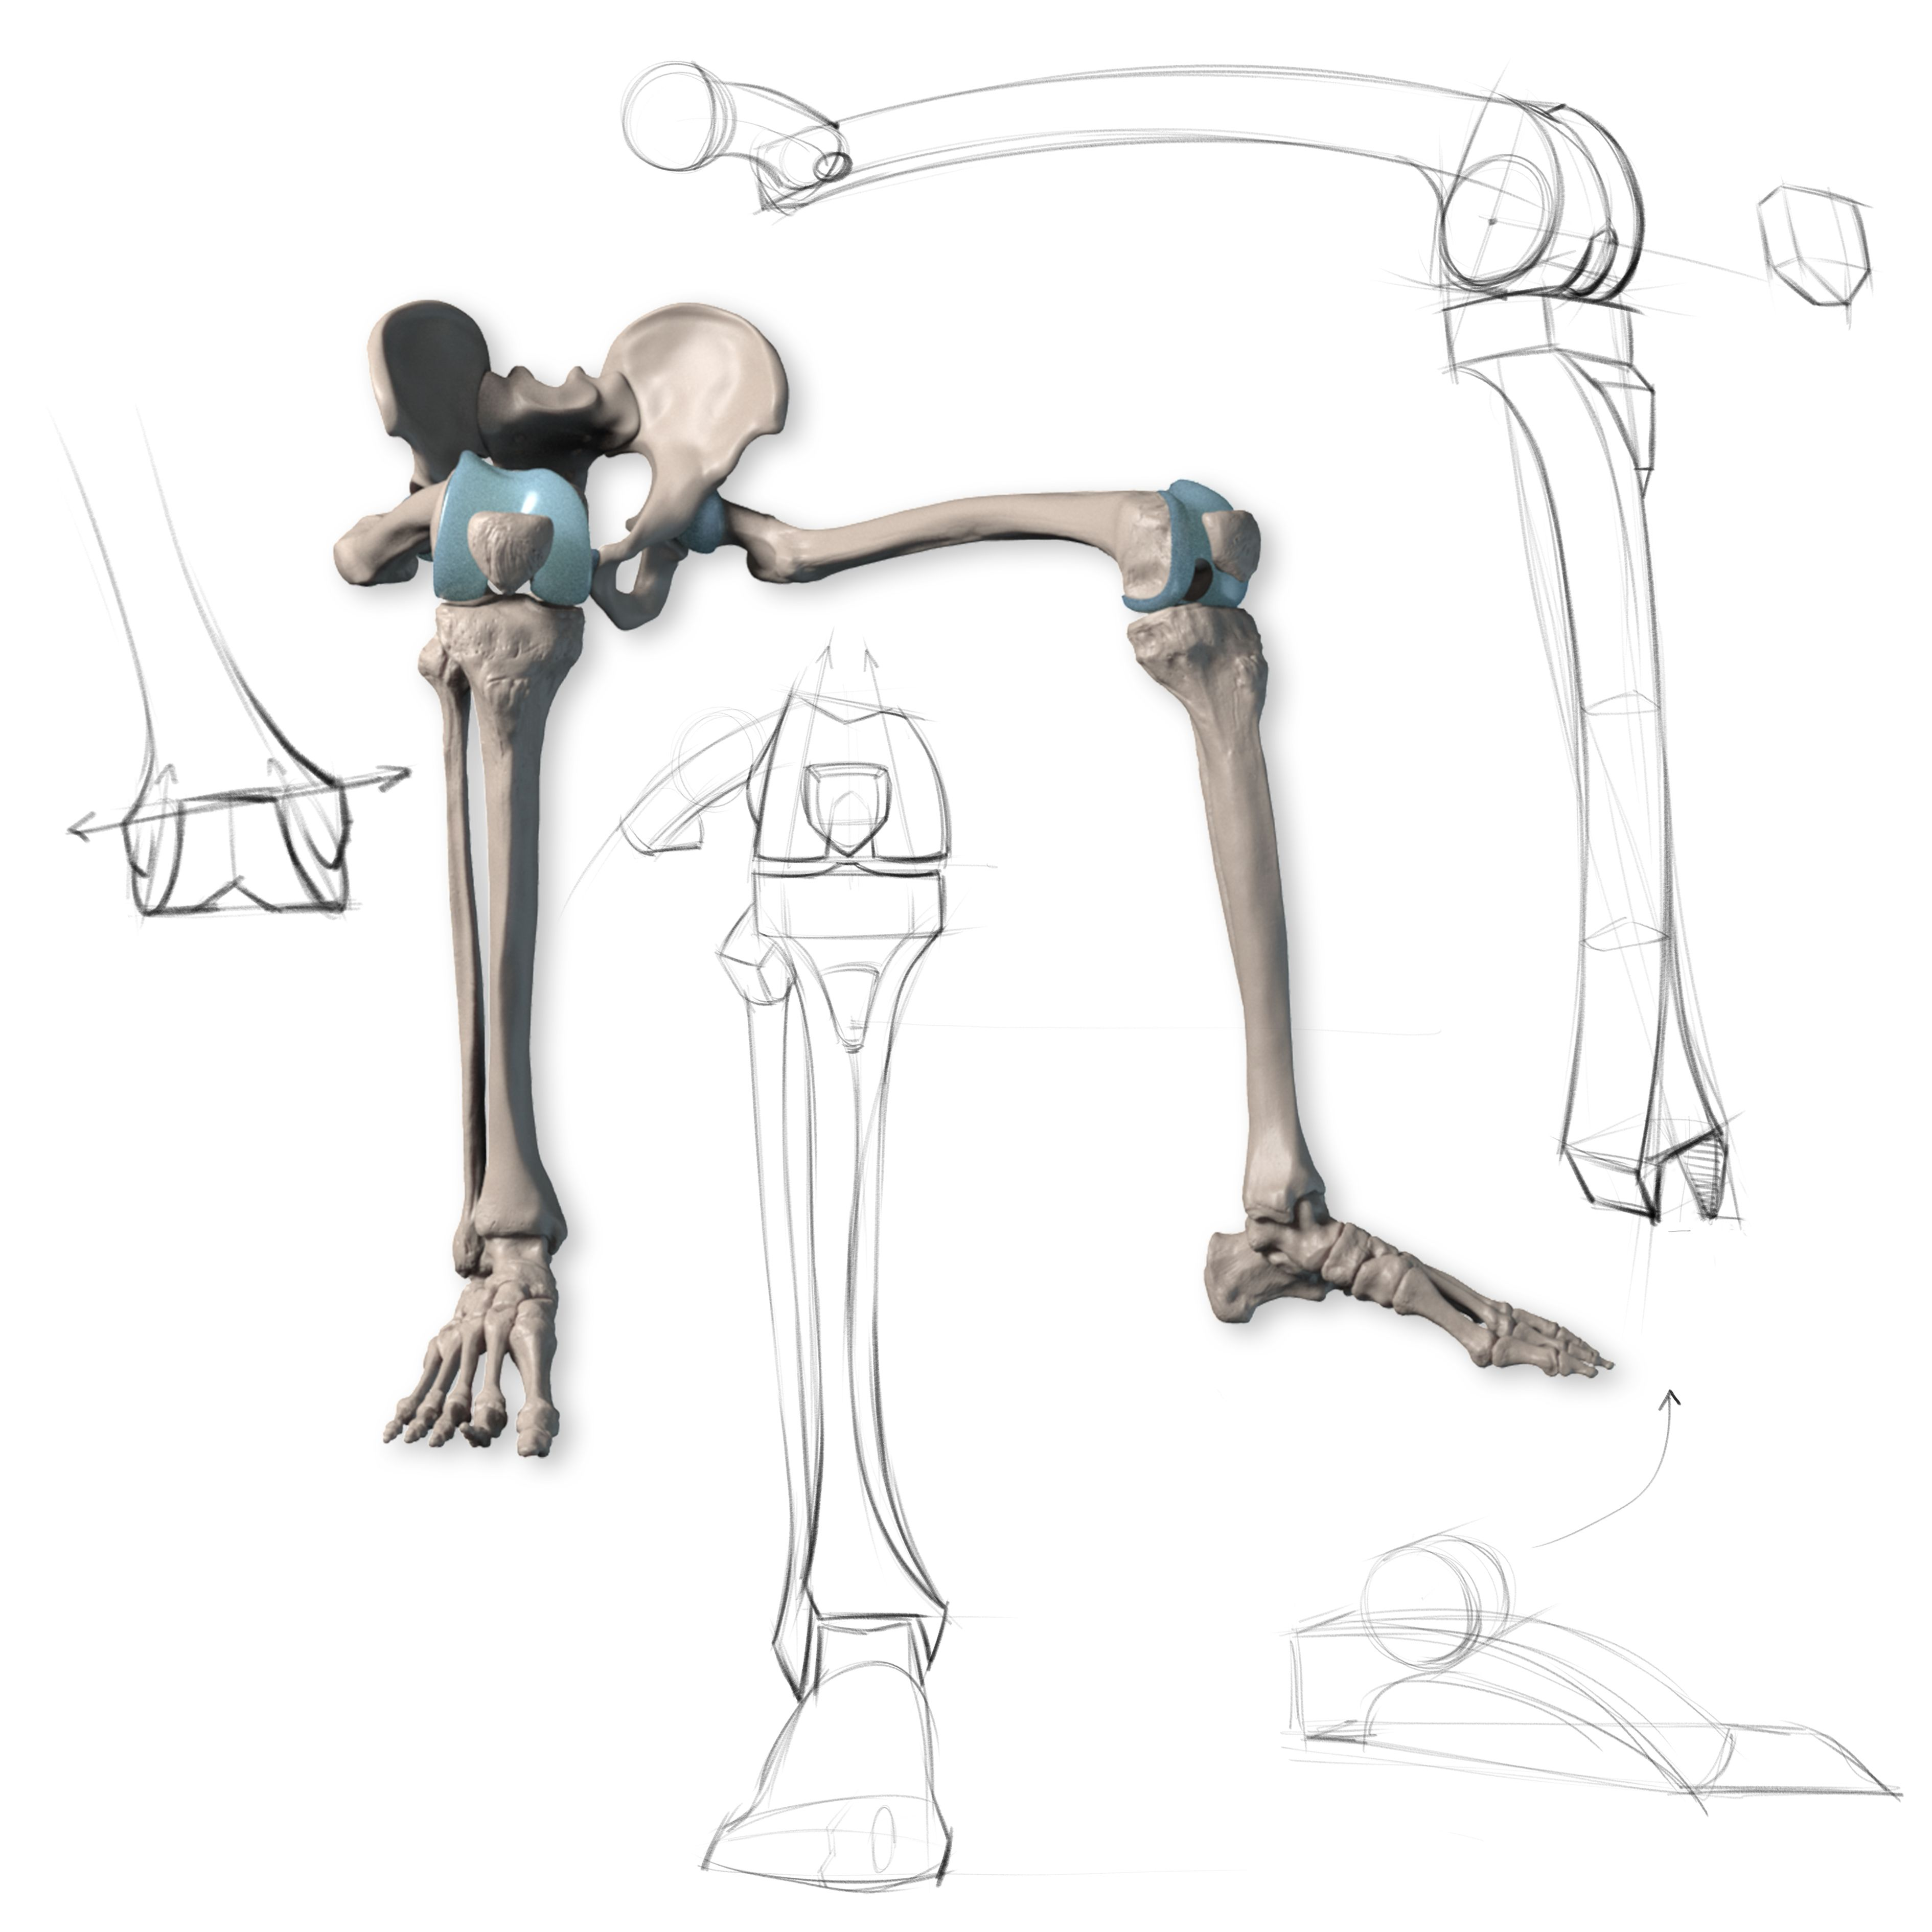 Anatomy of the Human Body for Artists Course   Anatomy, Legs and ...